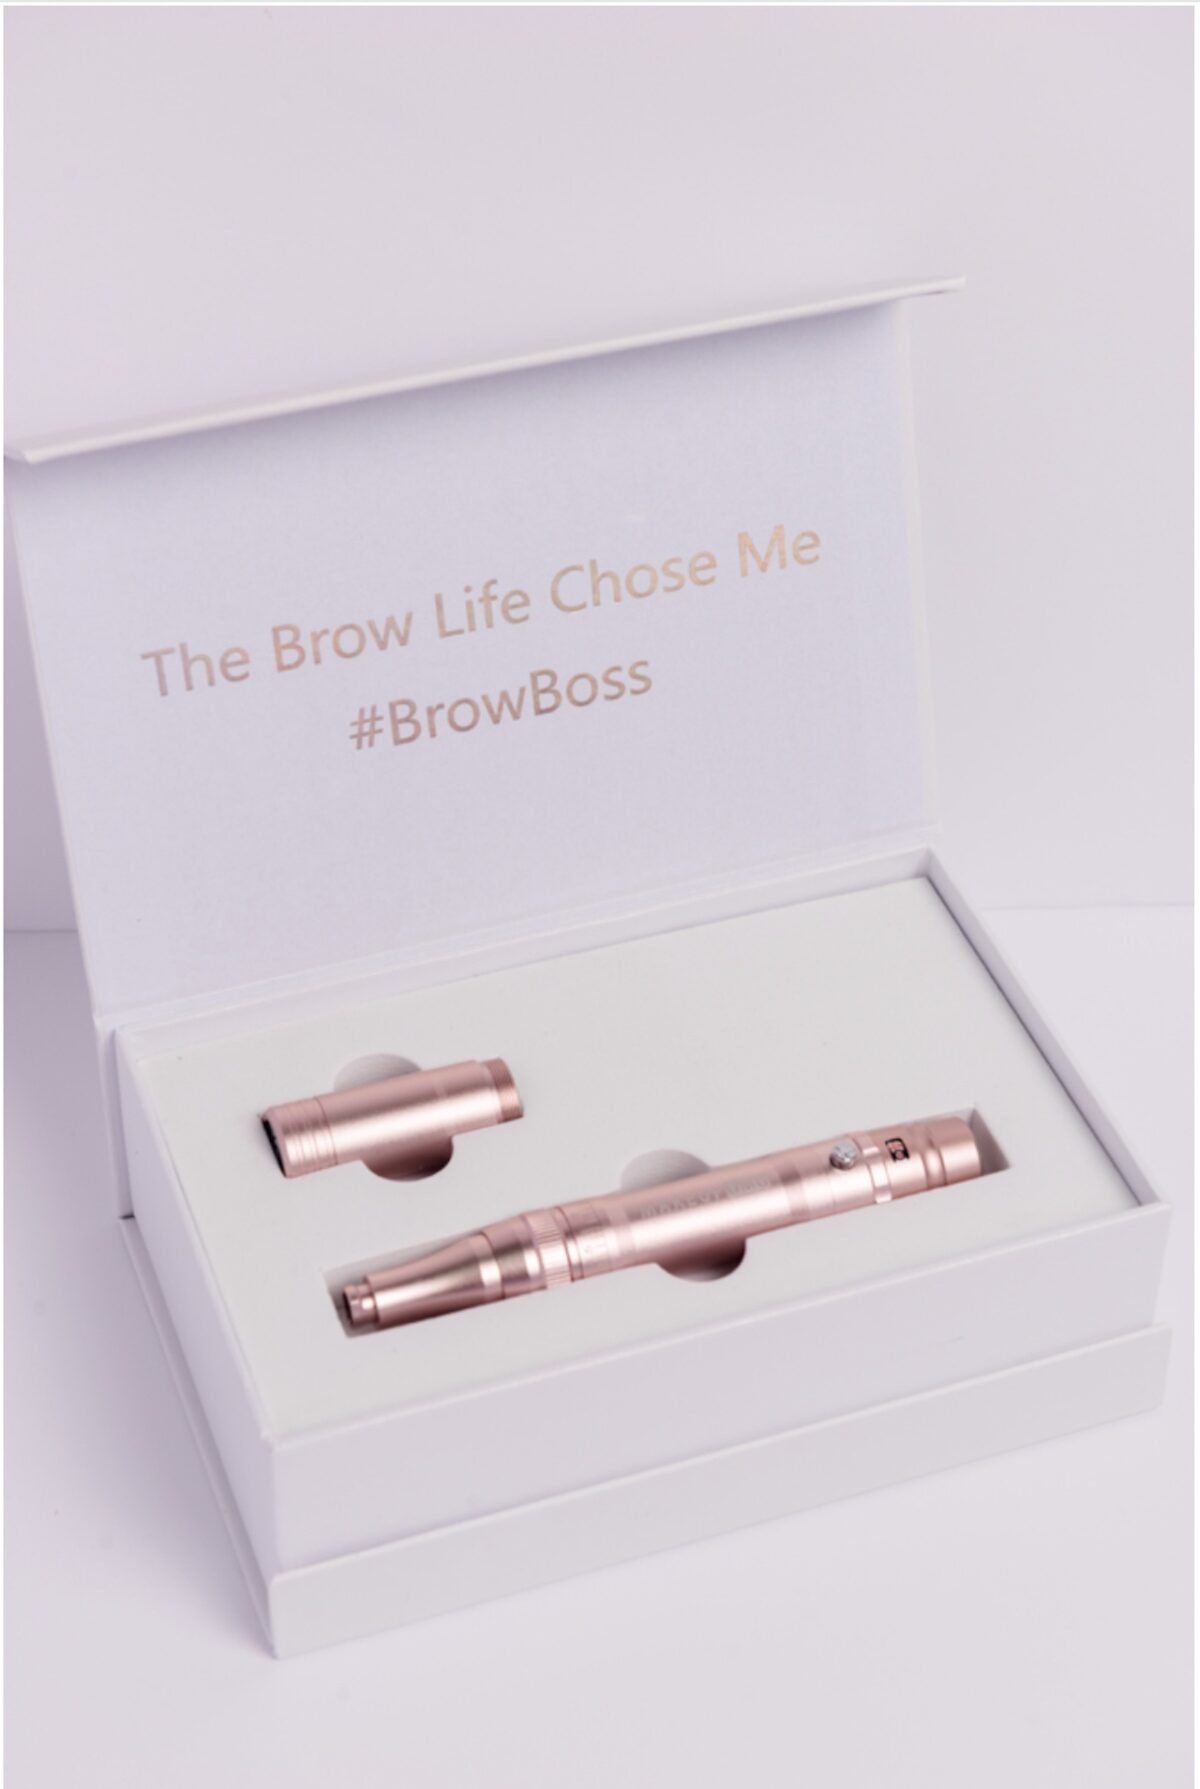 Brow Boss Wireless Permanent Makeup Pen machine and box